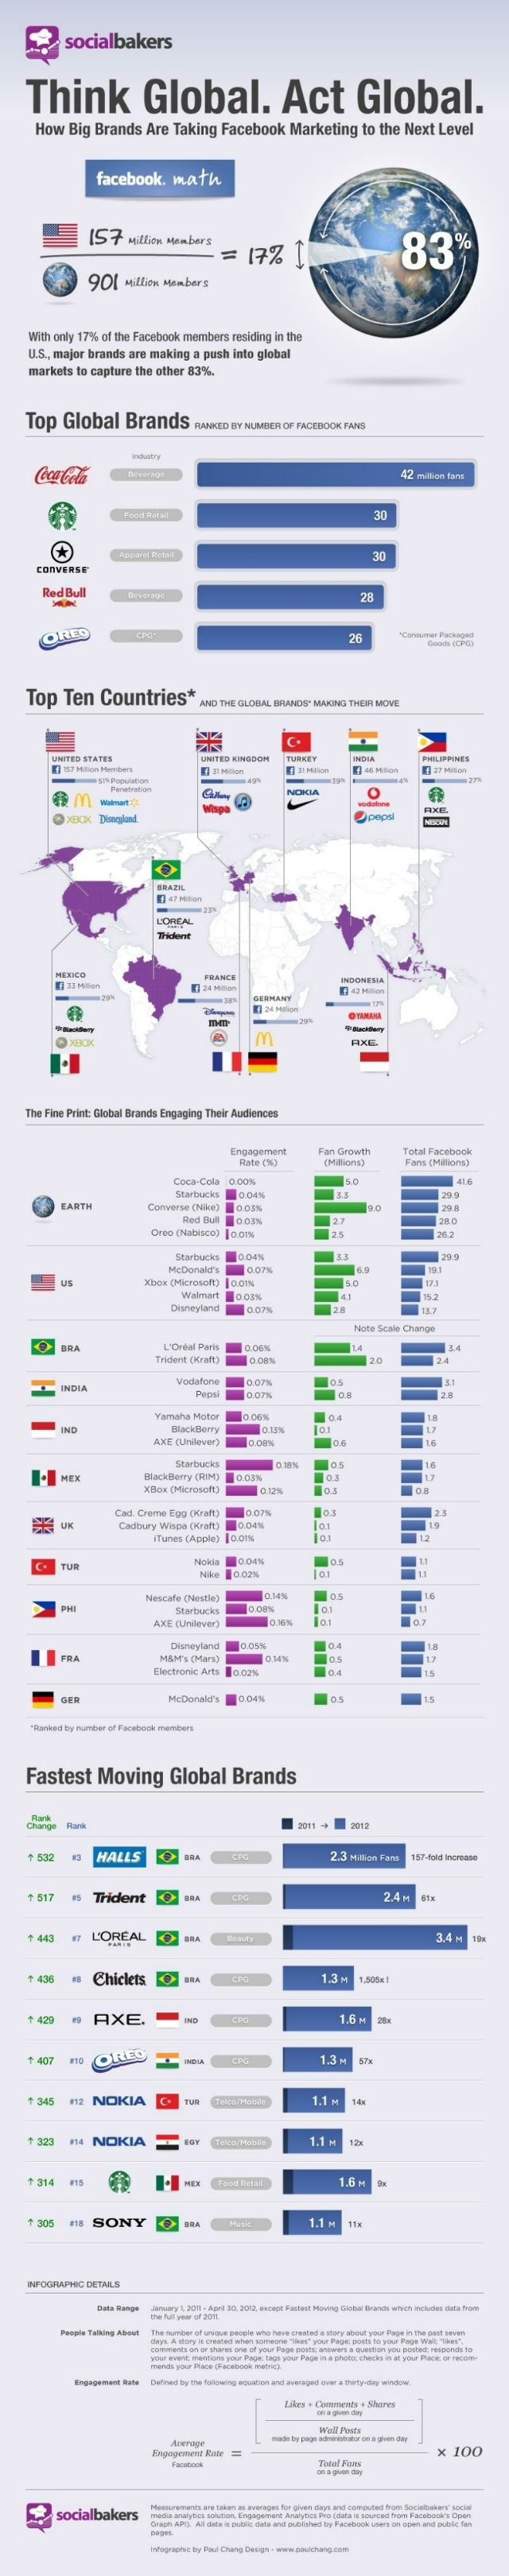 These Are the Most Engaging Brands on #Facebook #Infographic #SMM #Social_Media